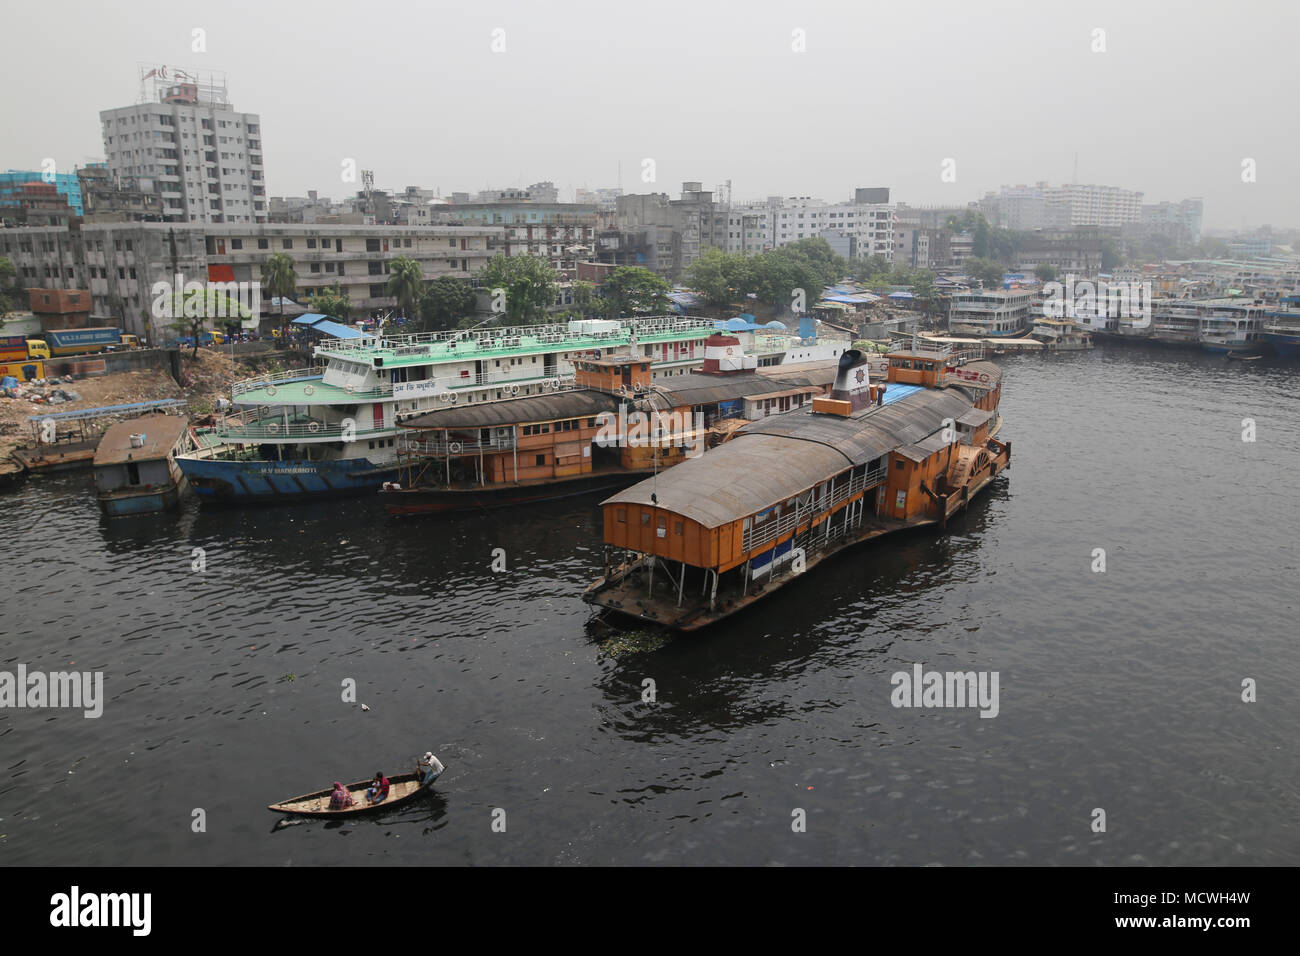 Dhaka, Bangladesh. Steamers (ship) anchored in the Buriganga River in Dhaka, Bangladesh on April 17, 2018. Thousands people cross the Buriganga river everyday, which is becoming deadly river as the chemical waste of mills and factories, household waste eventually makes its way into the Buriganga River. © Rehman Asad/Alamy Stock Photo Stock Photo